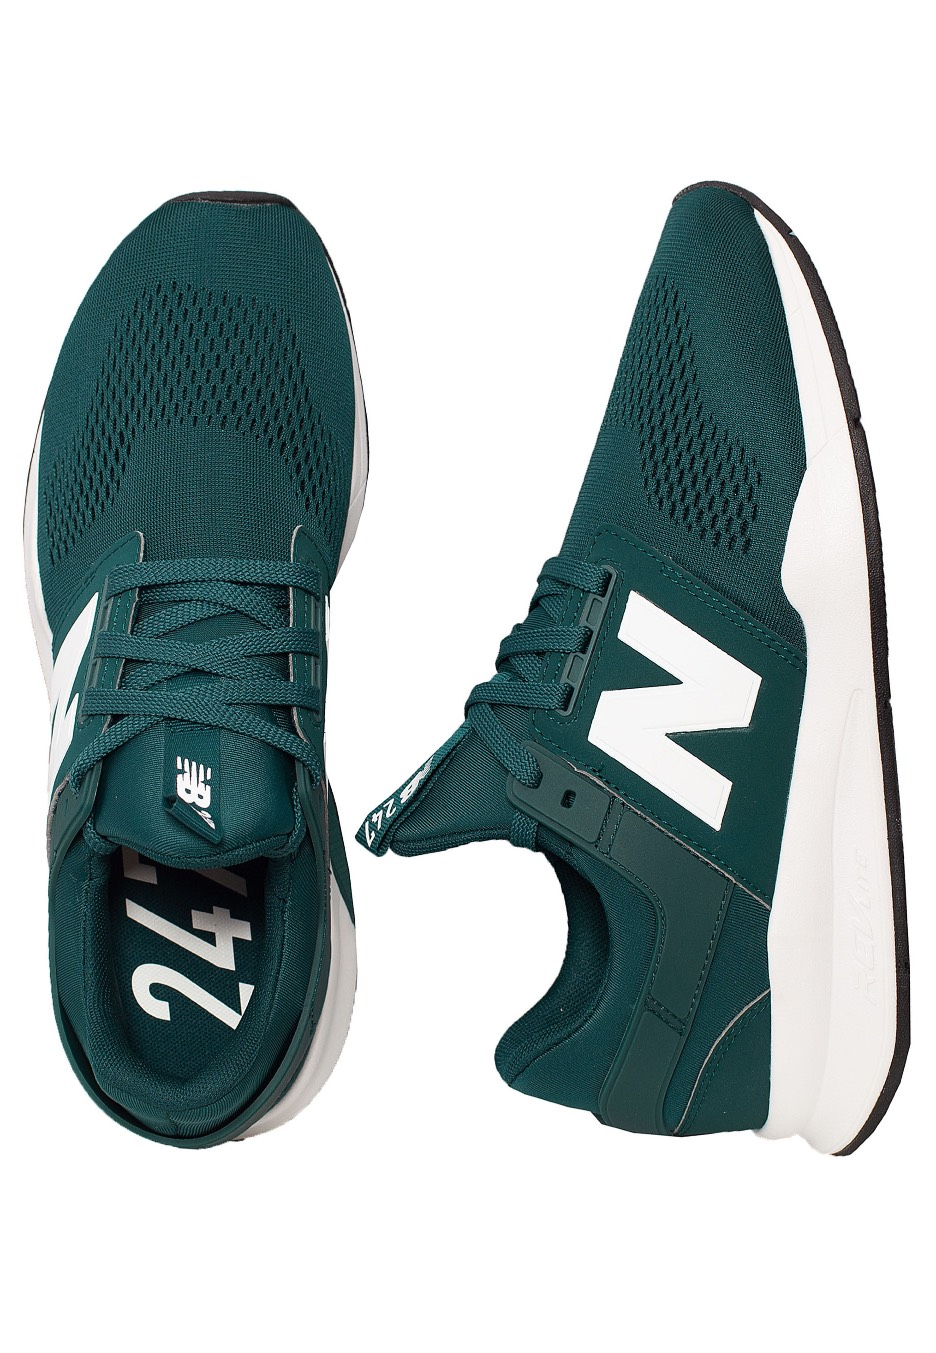 b0d17c0d8ba6 New Balance - MS247 Deep Jade - Shoes